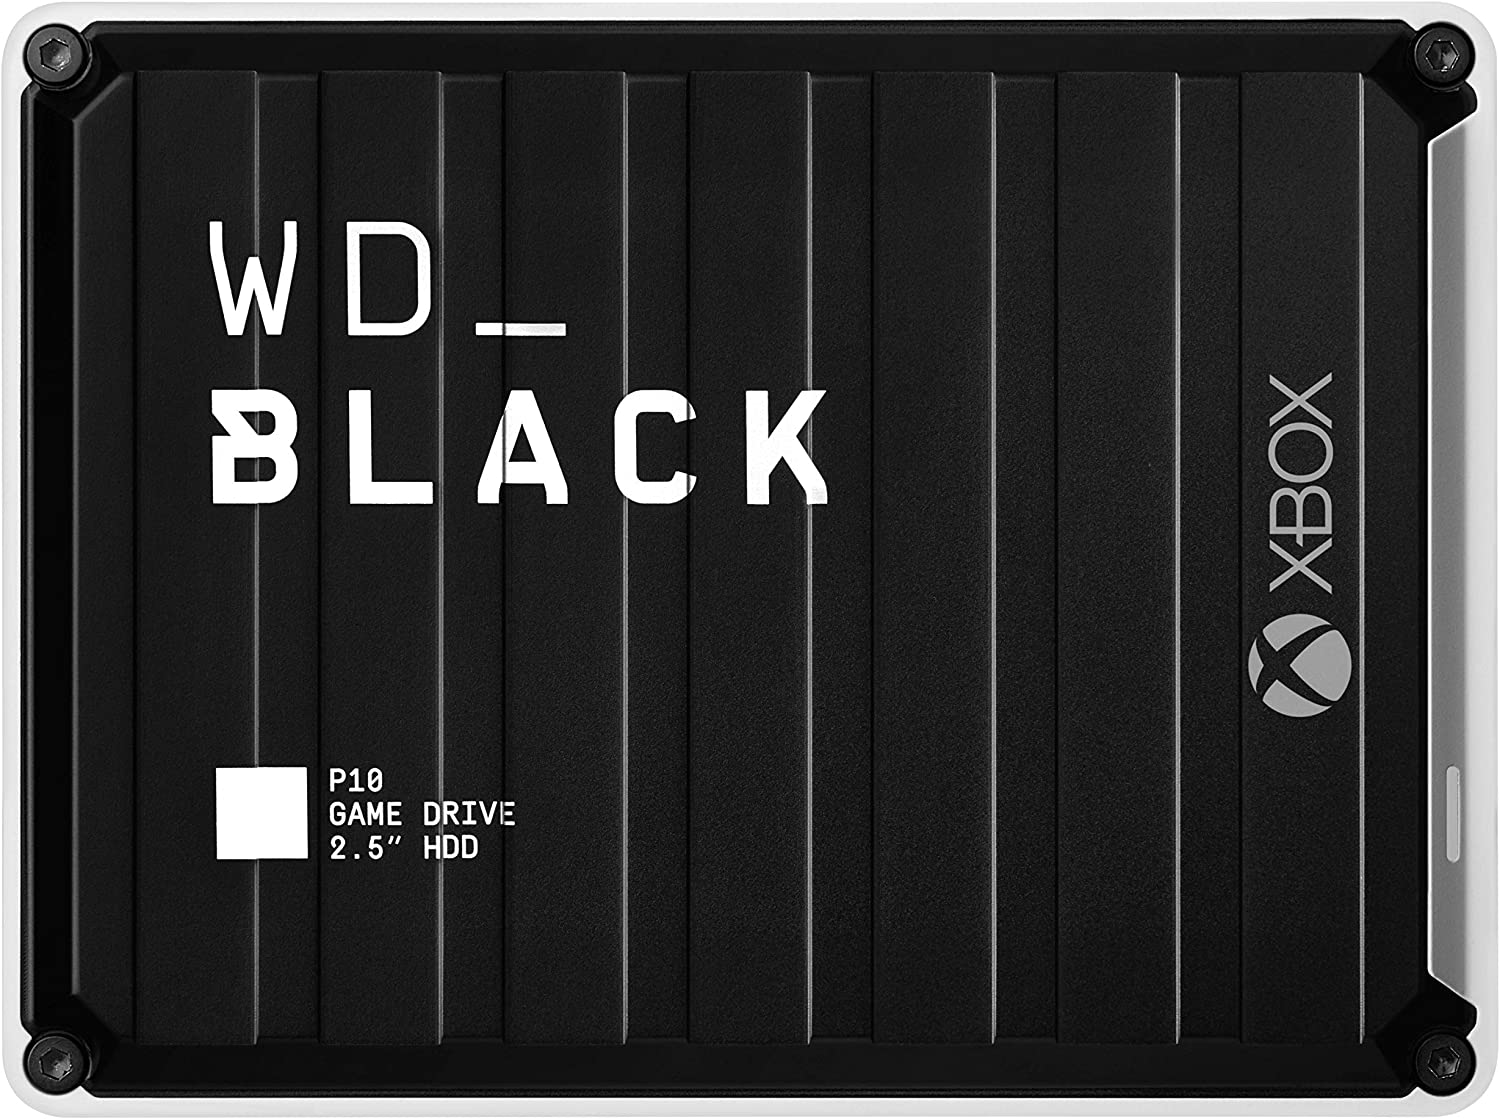 WD_Black 5TB P10 Game Drive for Xbox One, Portable External Hard Drive with 2-Month Xbox Game Pass - WDBA5G0050BBK-WESN: Computers & Accessories